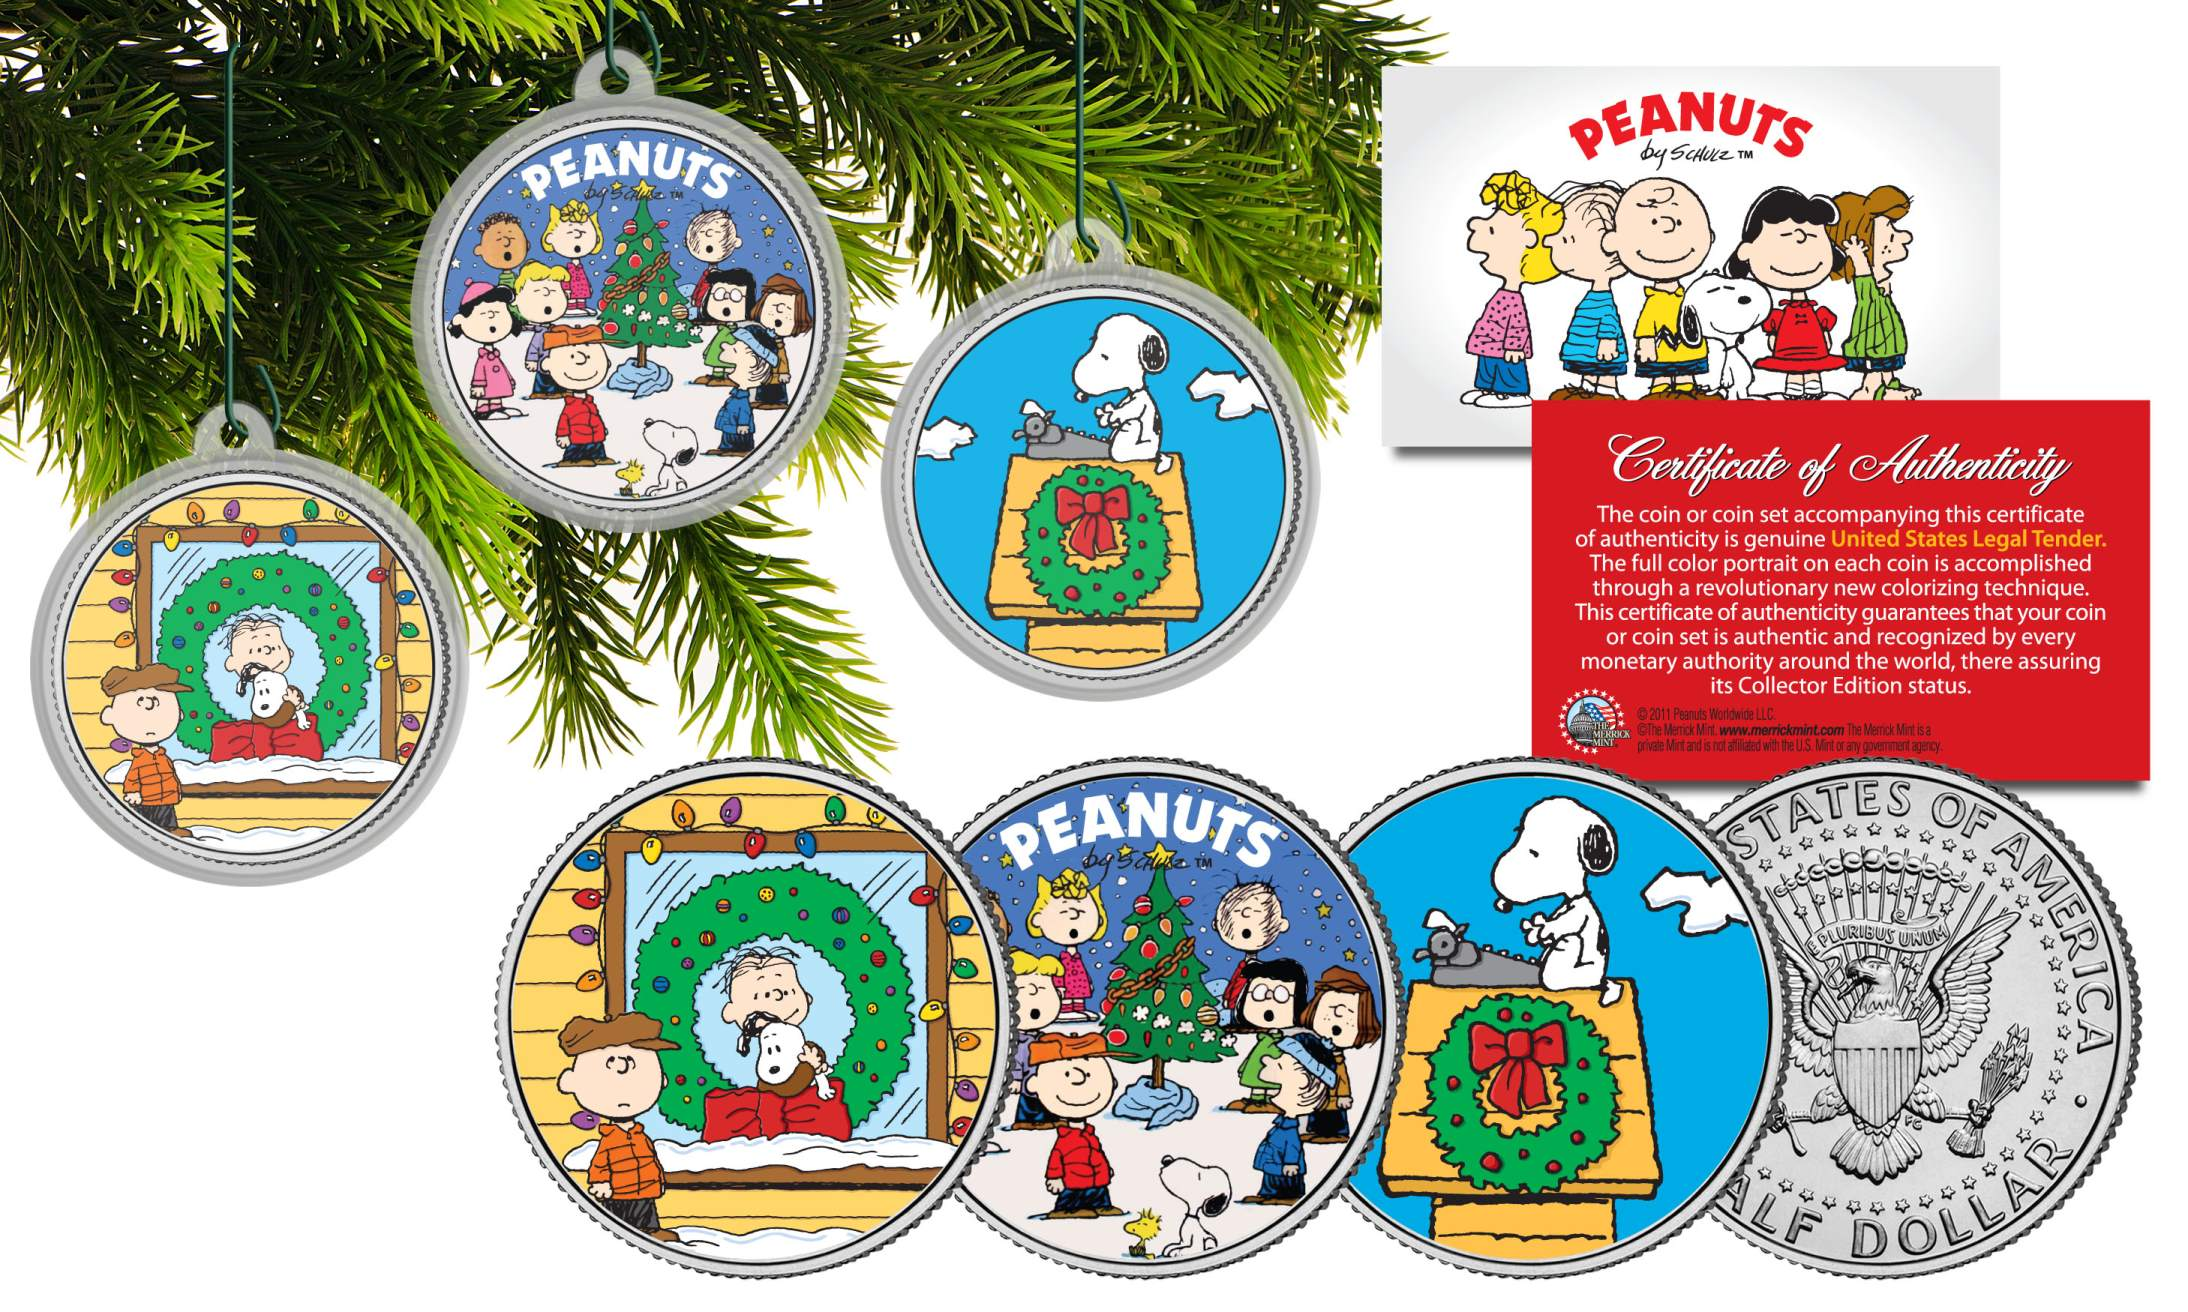 peanuts christmas charlie brown jfk half dollar 3 coin set tree ornaments snoopy - Peanuts Christmas